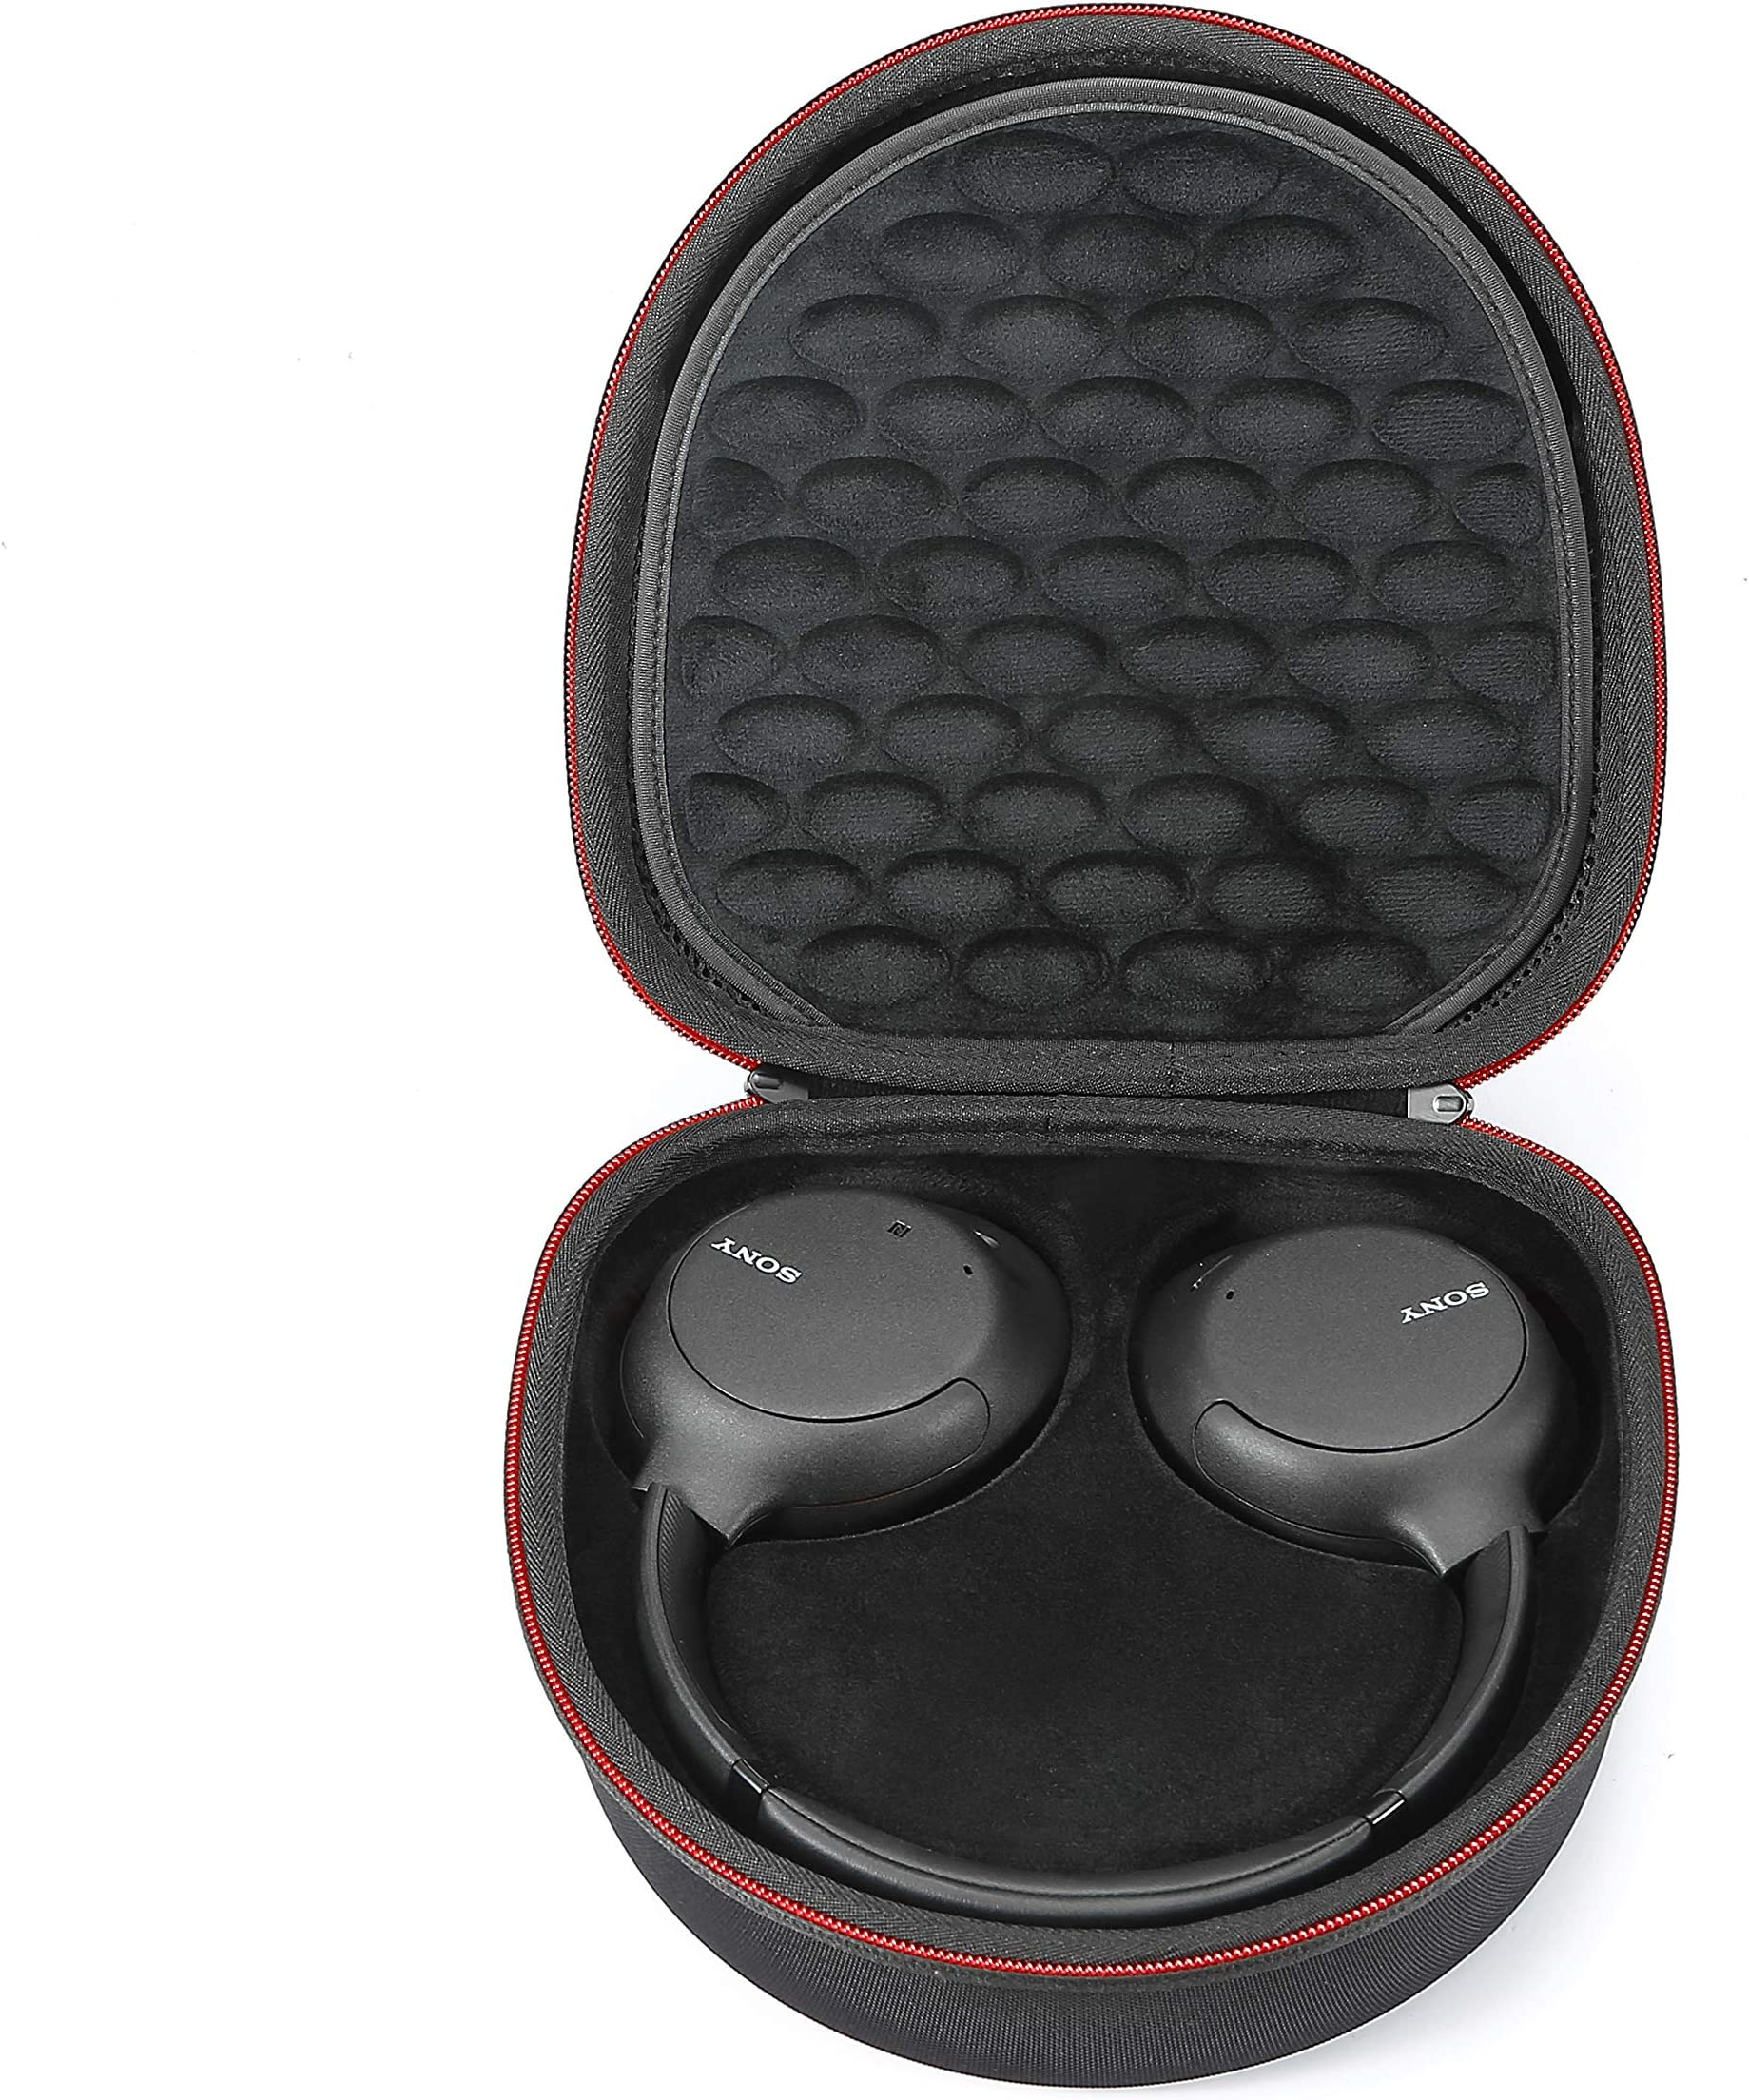 Hard Case for Sony WH-CH700N/Sony WH-CH710N Wireless Noise Cancelling Headphones, Travel Carrying Storage Bag - Black+Black